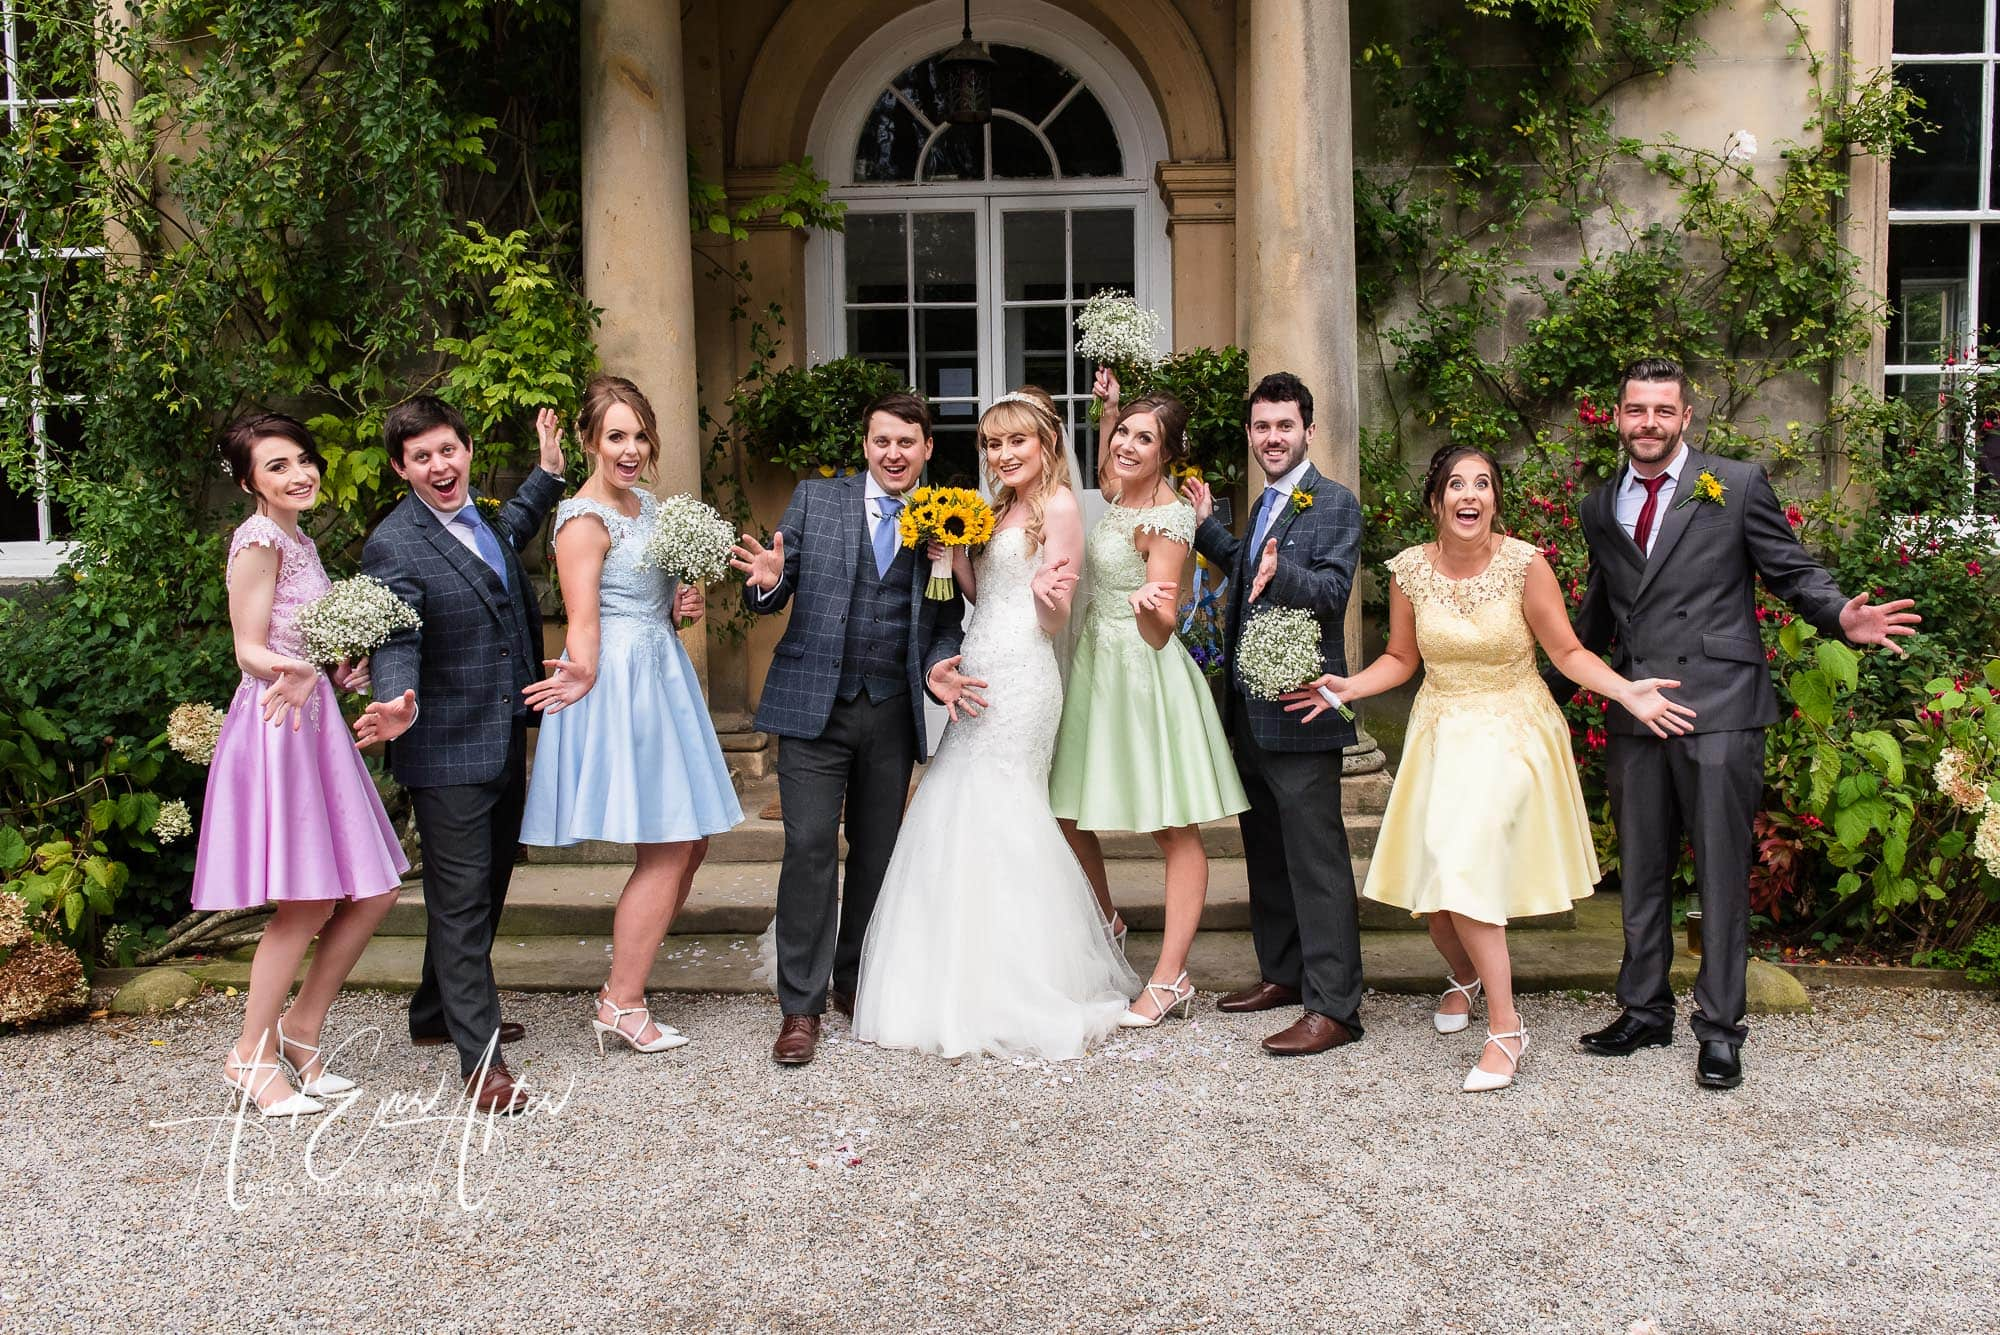 Middelton Lodge Wedding Photography, And Ever after Photography, wedding photos